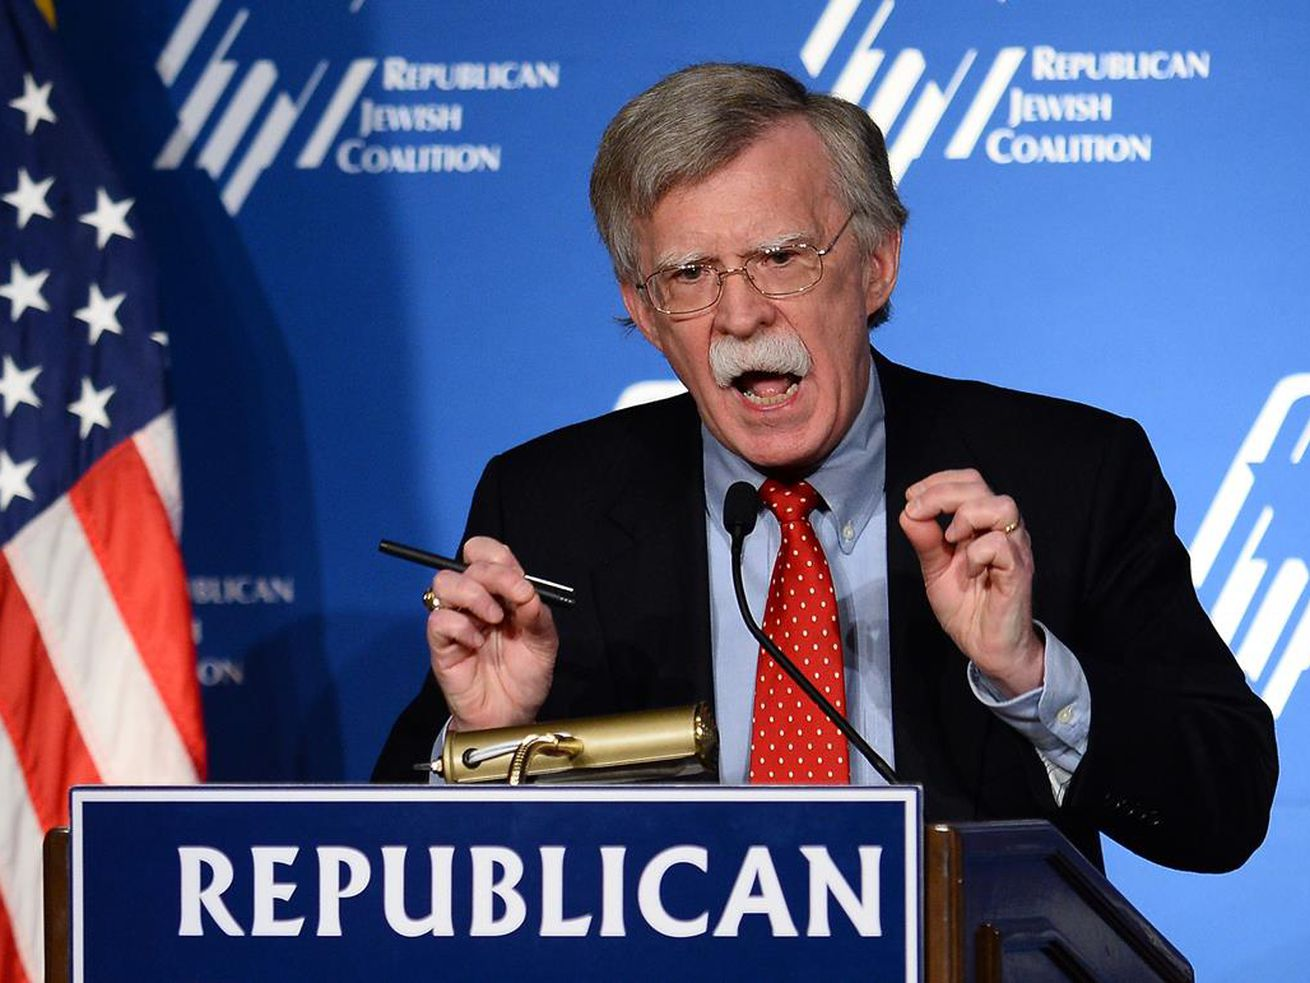 National Security Advisor John Bolton said there will be conditions to the US withdrawal from Syria.